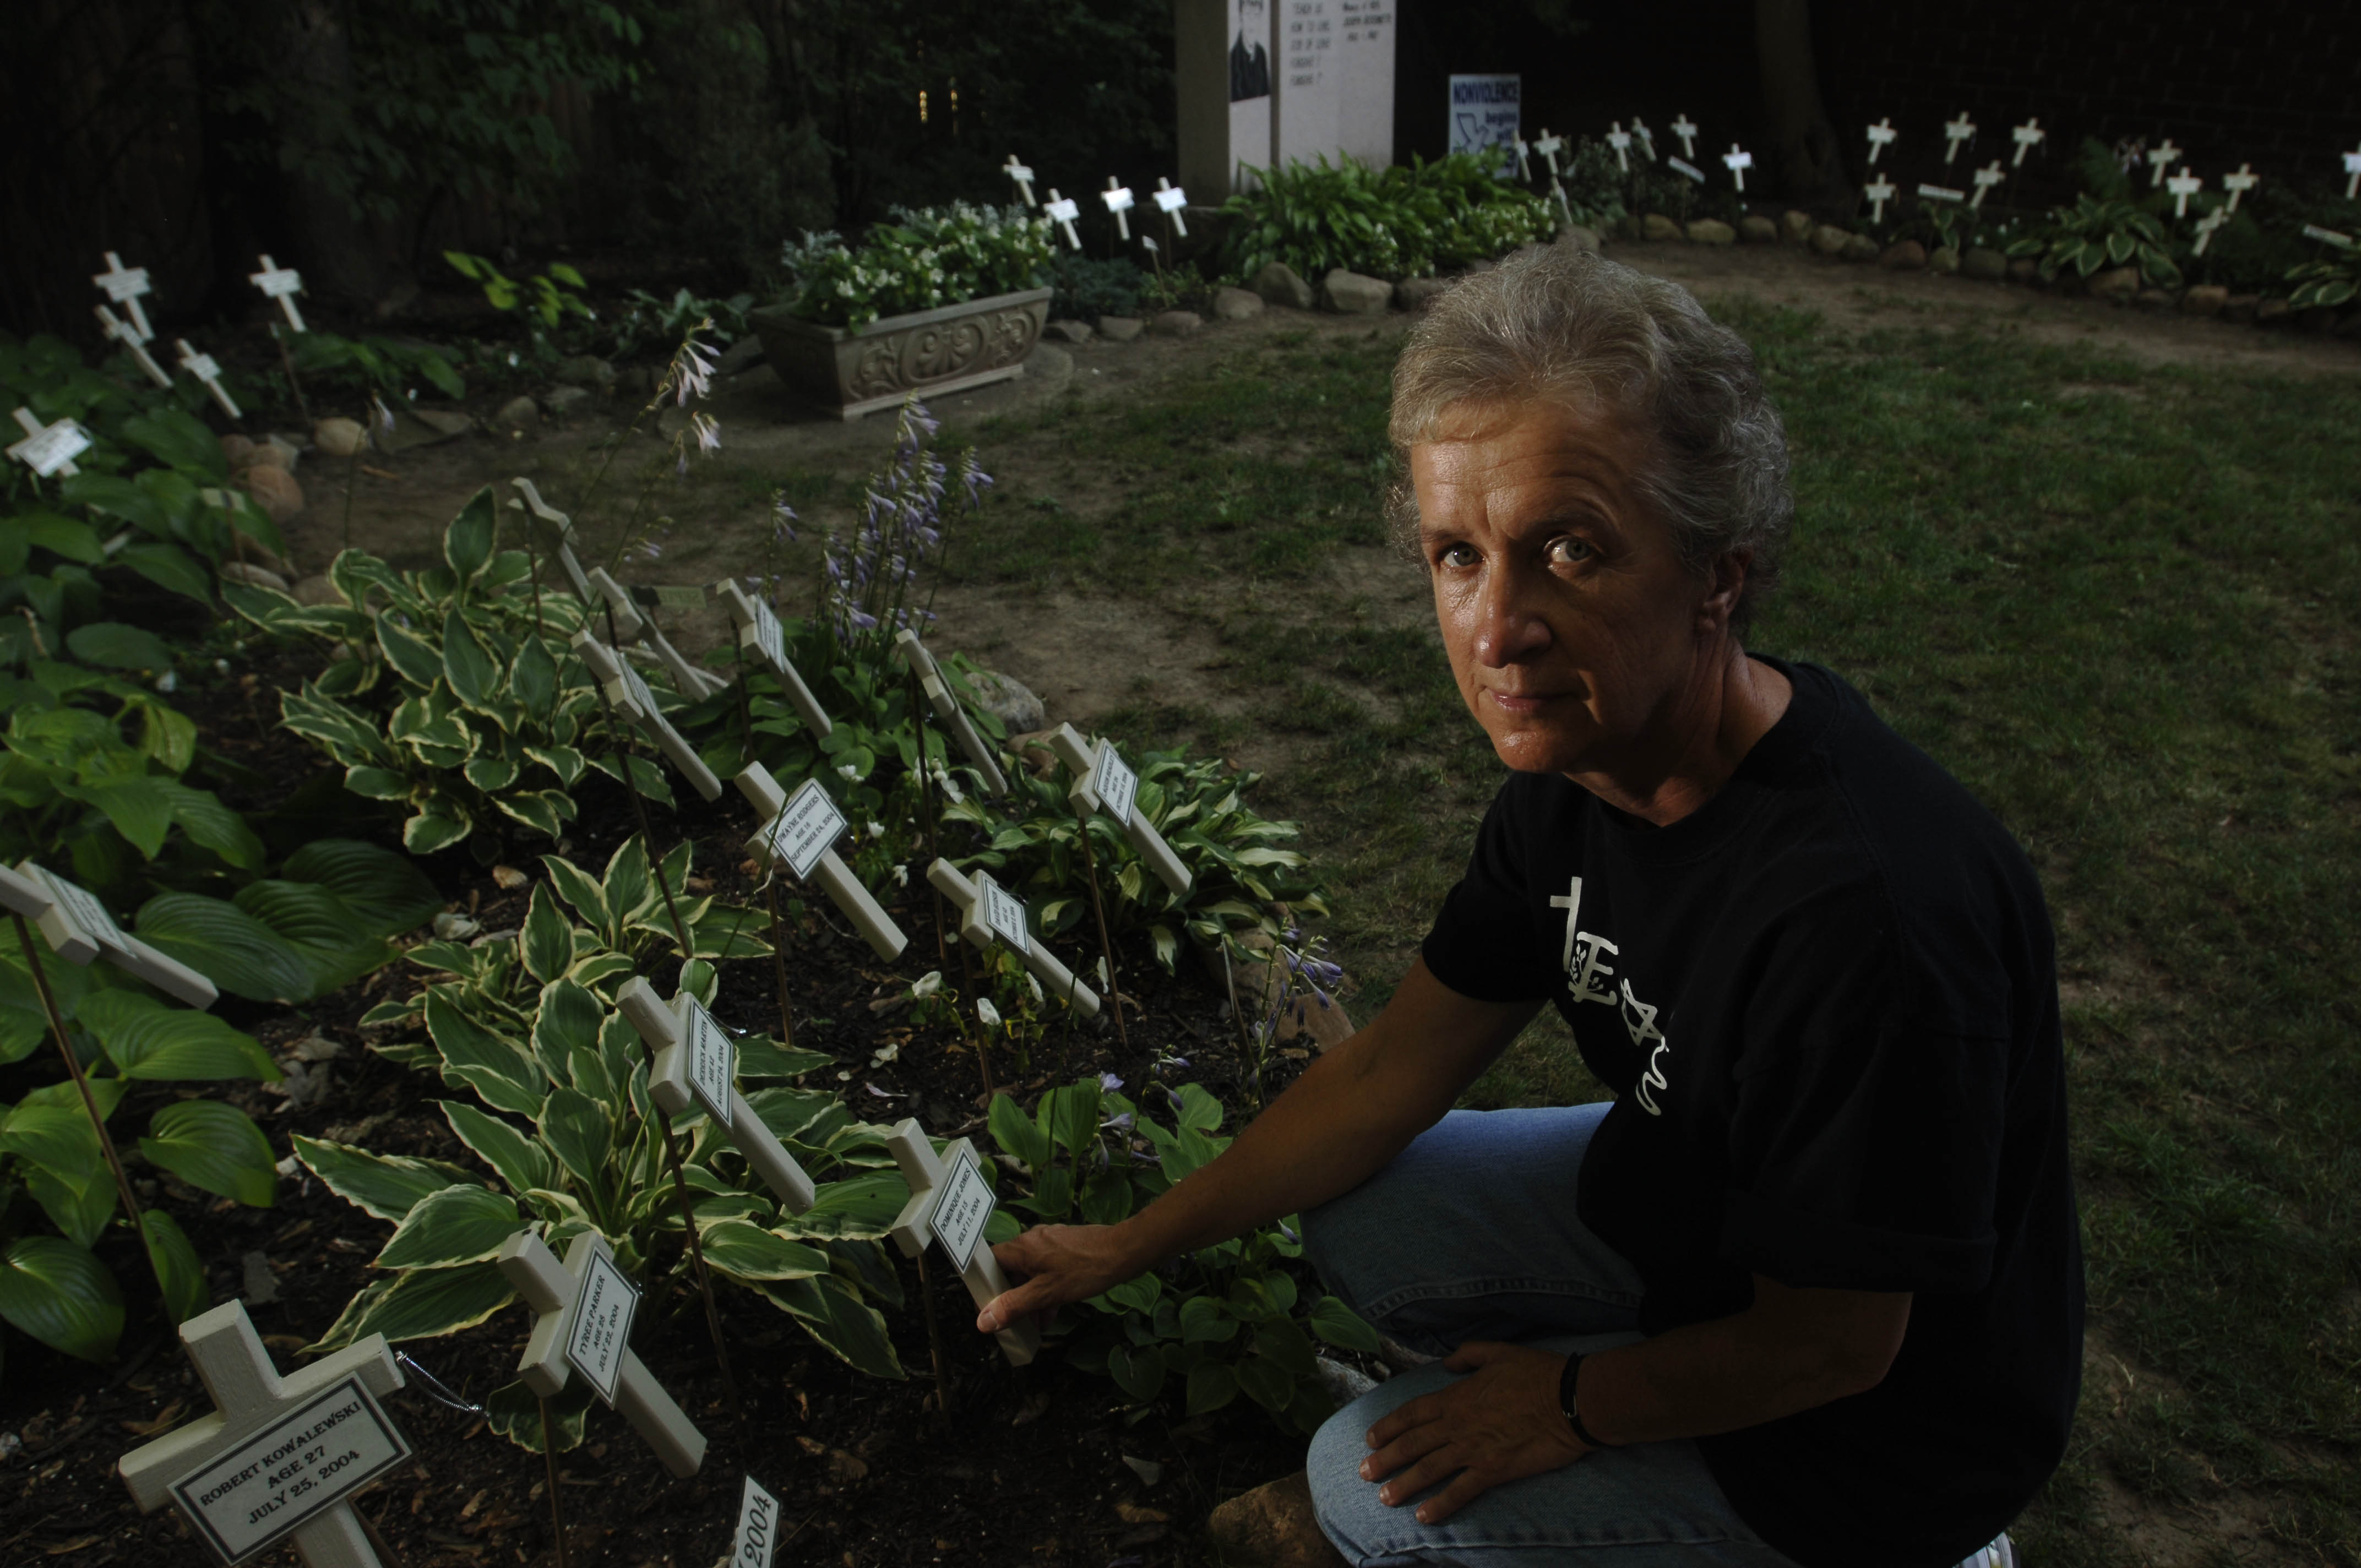 In 2005, Sister Karen Klimczak arranged a memorial featuring a cross for each of the more than 50 murder victims in the City of Buffalo since June of 2004 in the garden at the Bissonette House on Grider Avenue. (Derek Gee/Buffalo News)